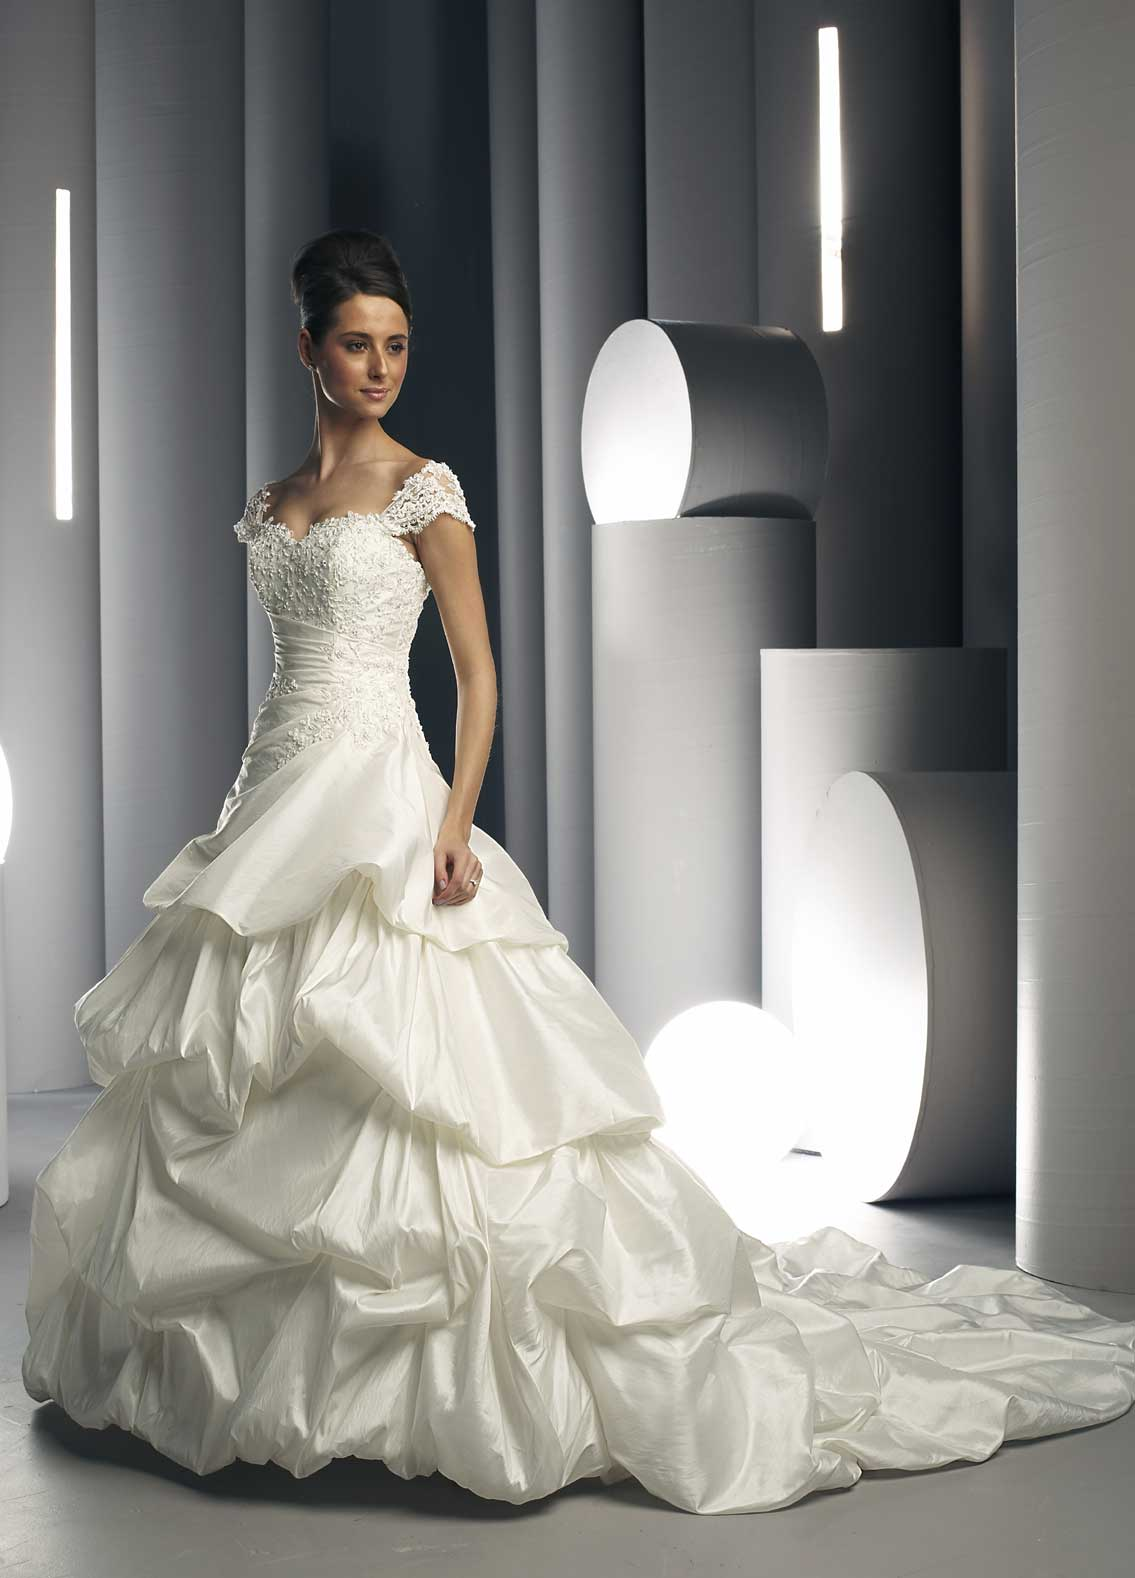 The Dream Wedding Inspirations White Bridal Gowns